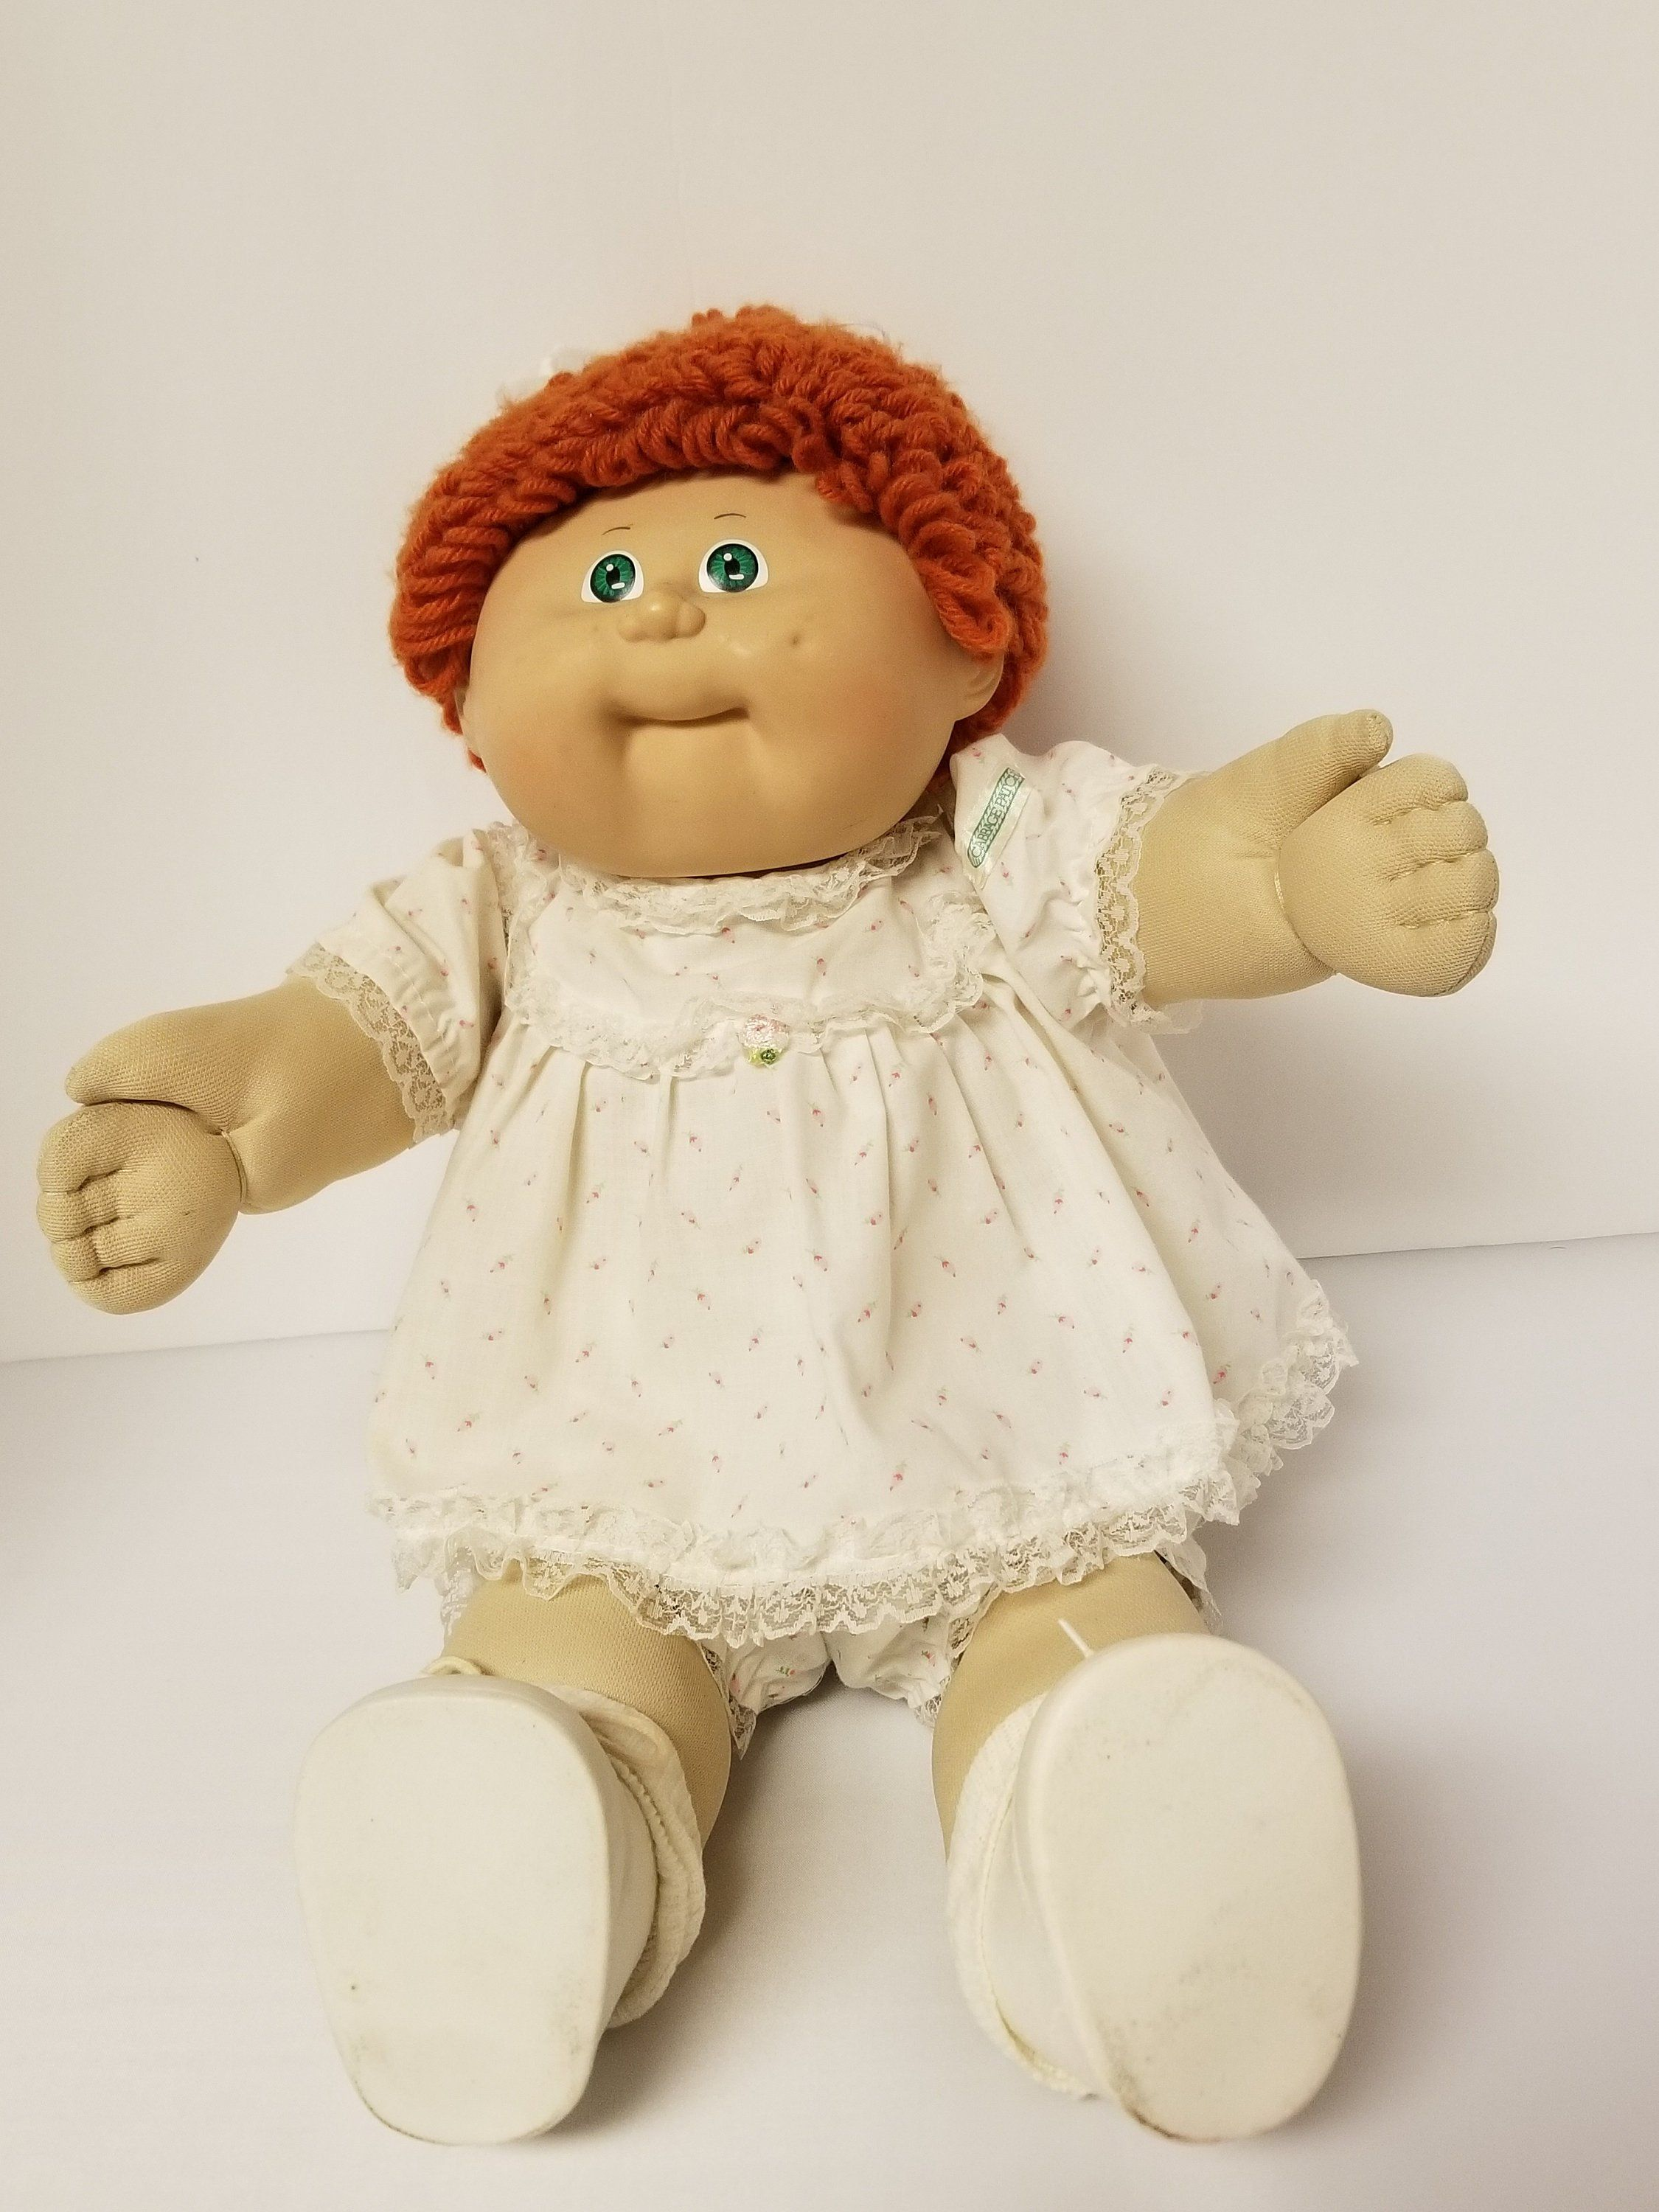 Vintage 1986 Cabbage Patch Doll With Red Hair And Green Eyes Etsy Cabbage Patch Dolls Cabbage Patch Kids Patch Kids